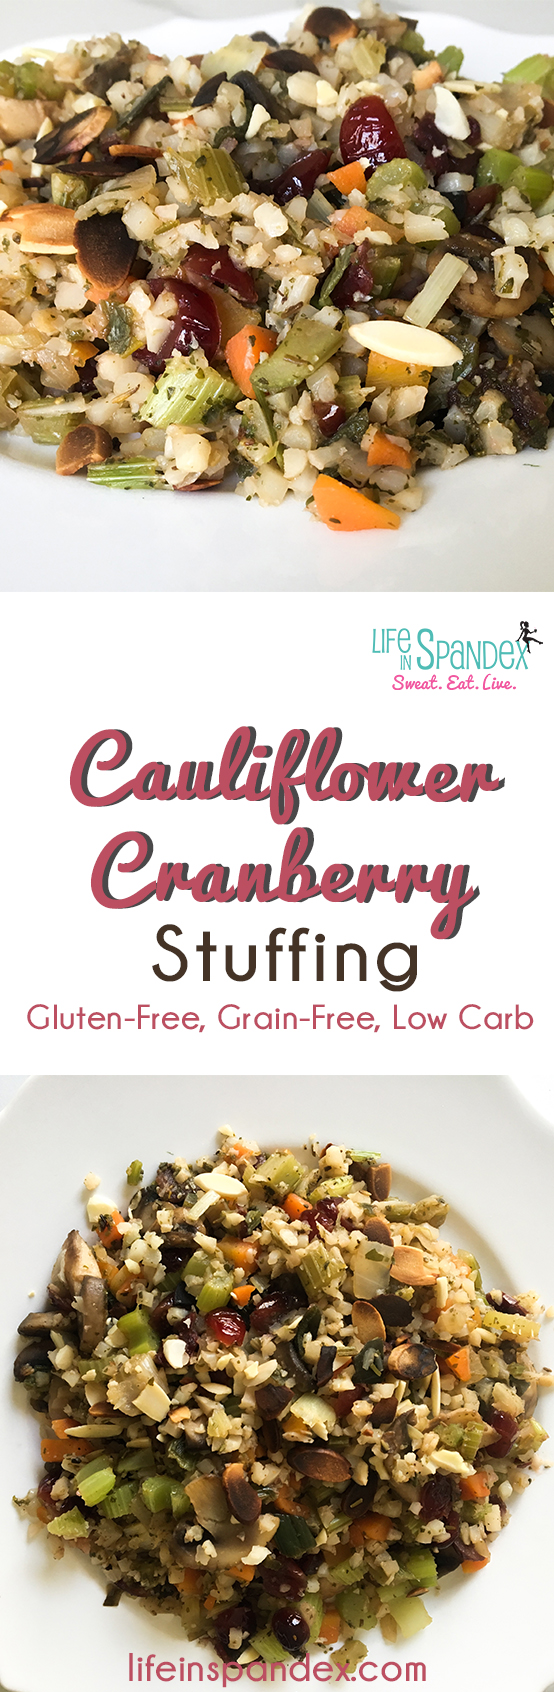 Cauliflower Cranberry Stuffing pinterest